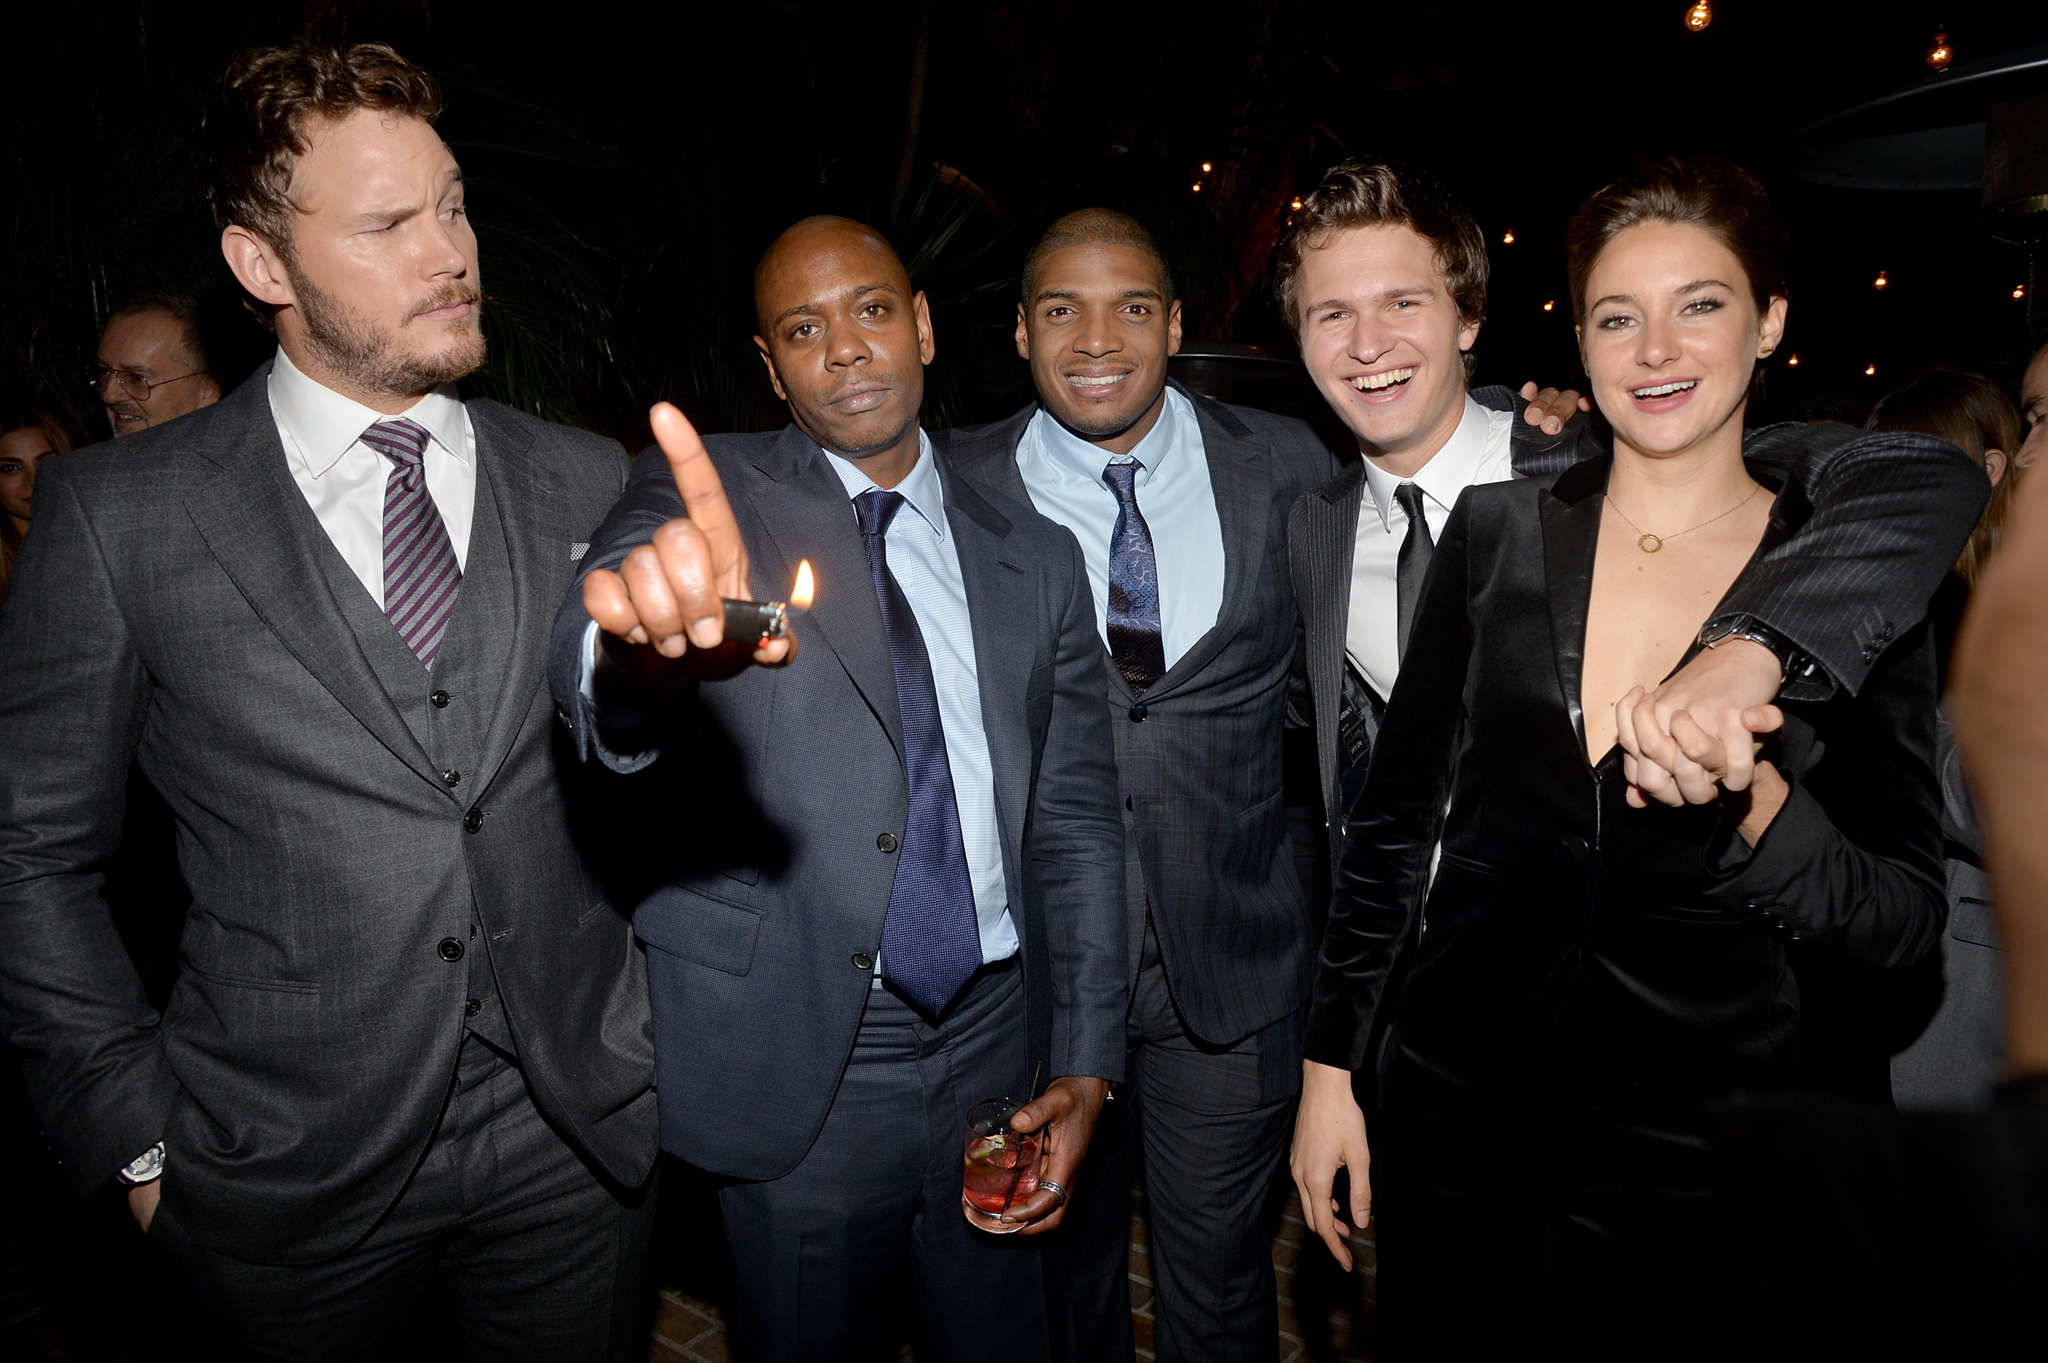 Dave Chappelle, Chris Pratt, Shailene Woodley, Ansel Elgort and Michael Sam photo #489105